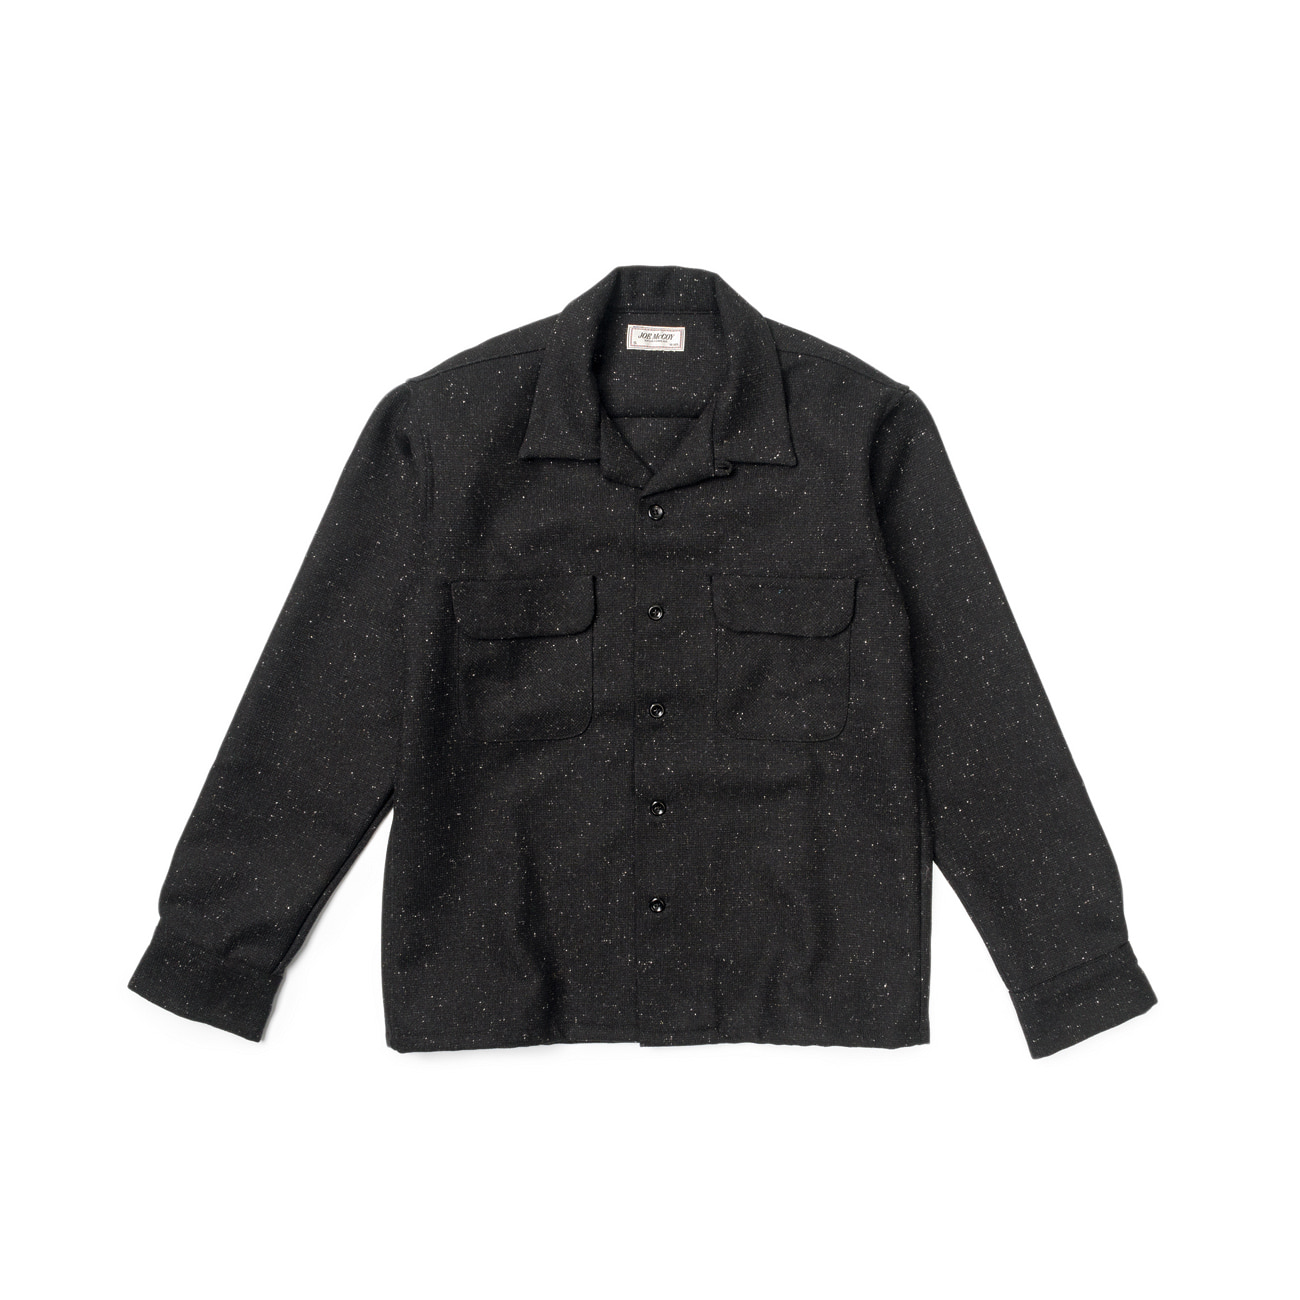 Freck Nep Open Collar Shirt